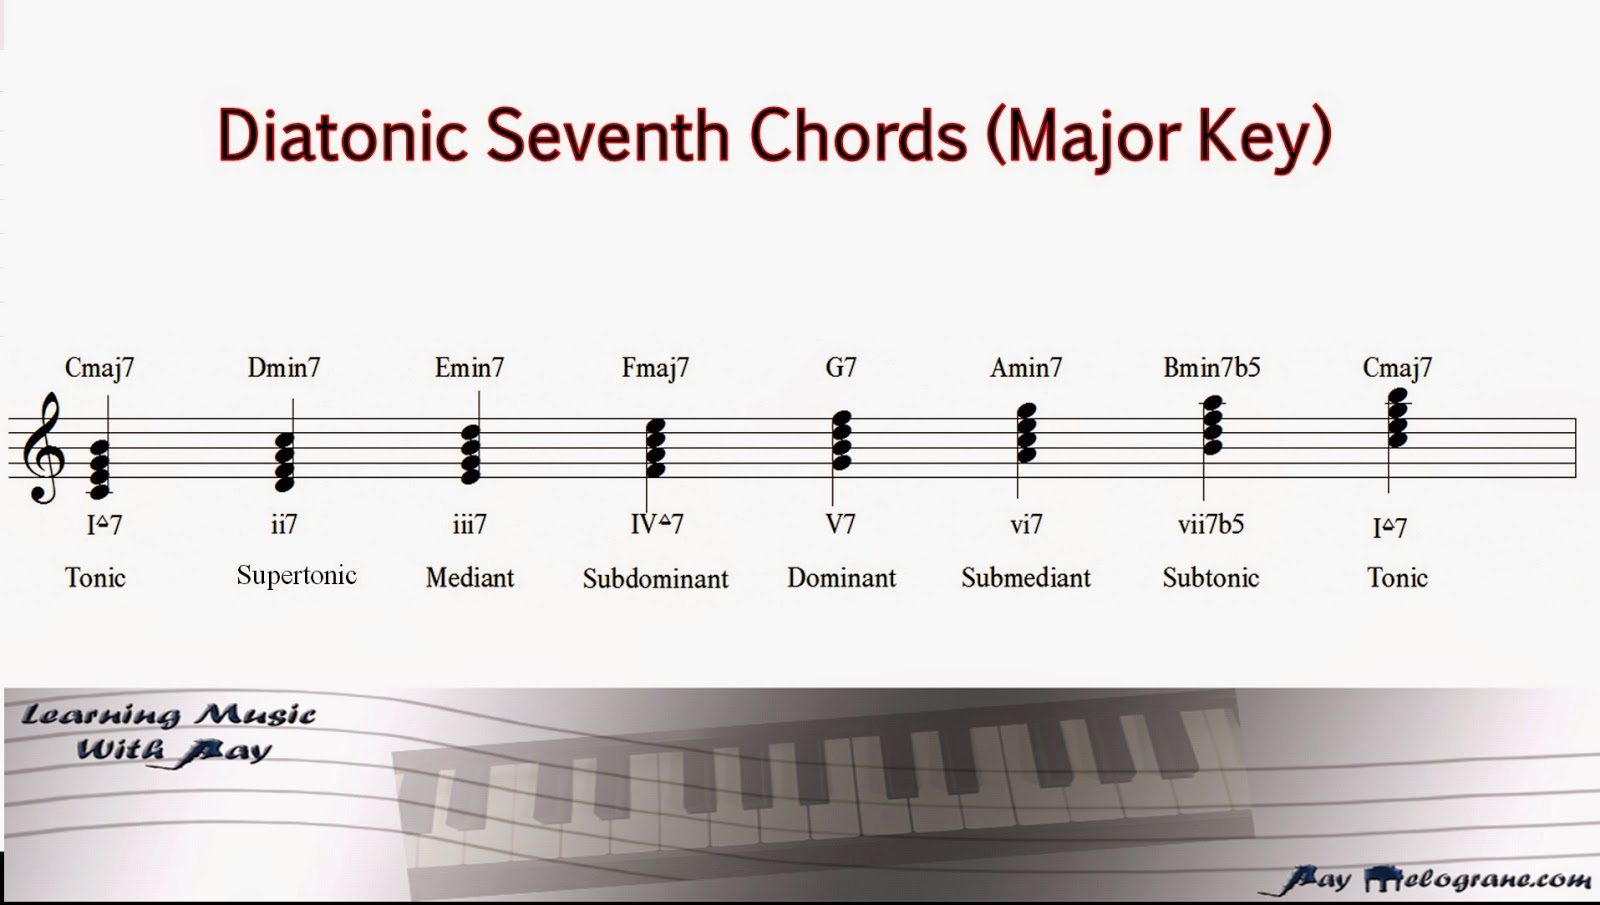 Learning music with ray blog chord progressions in minor keys the diatonic triads and seventh chords are constructed in almost the same way however a slight adjustment needs to be made for two of the hexwebz Image collections